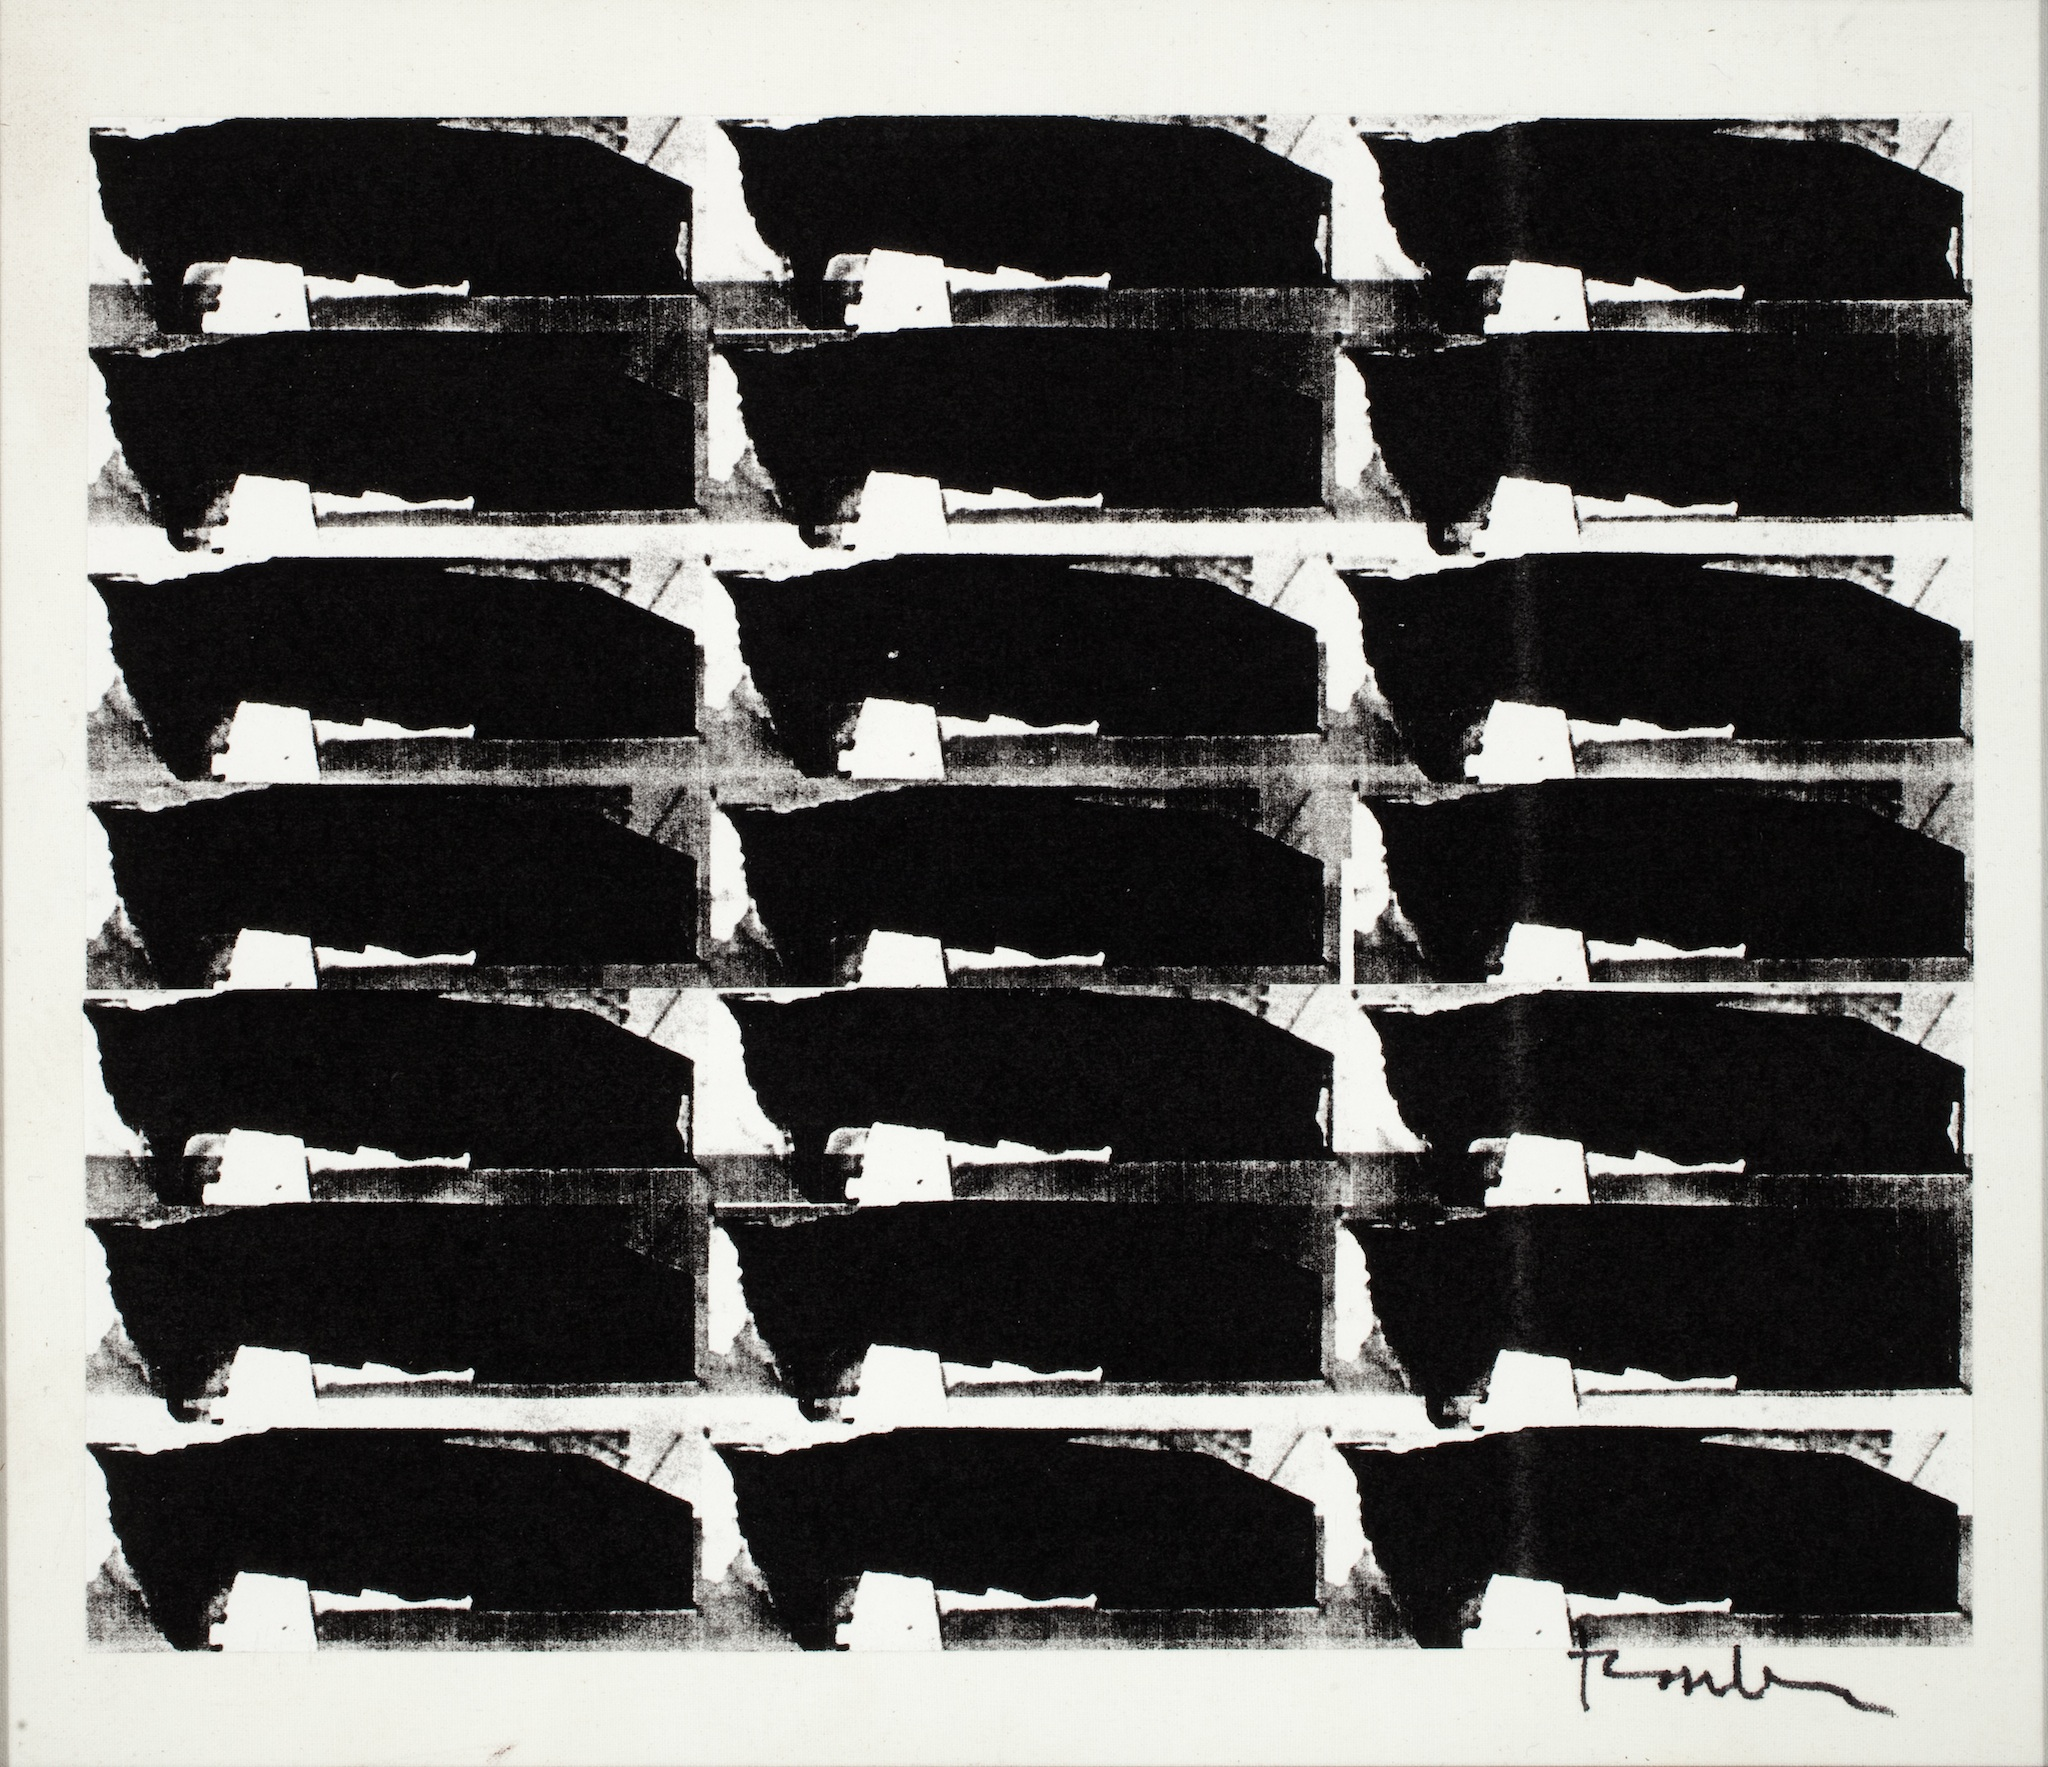 Black and White No. 3, 2009